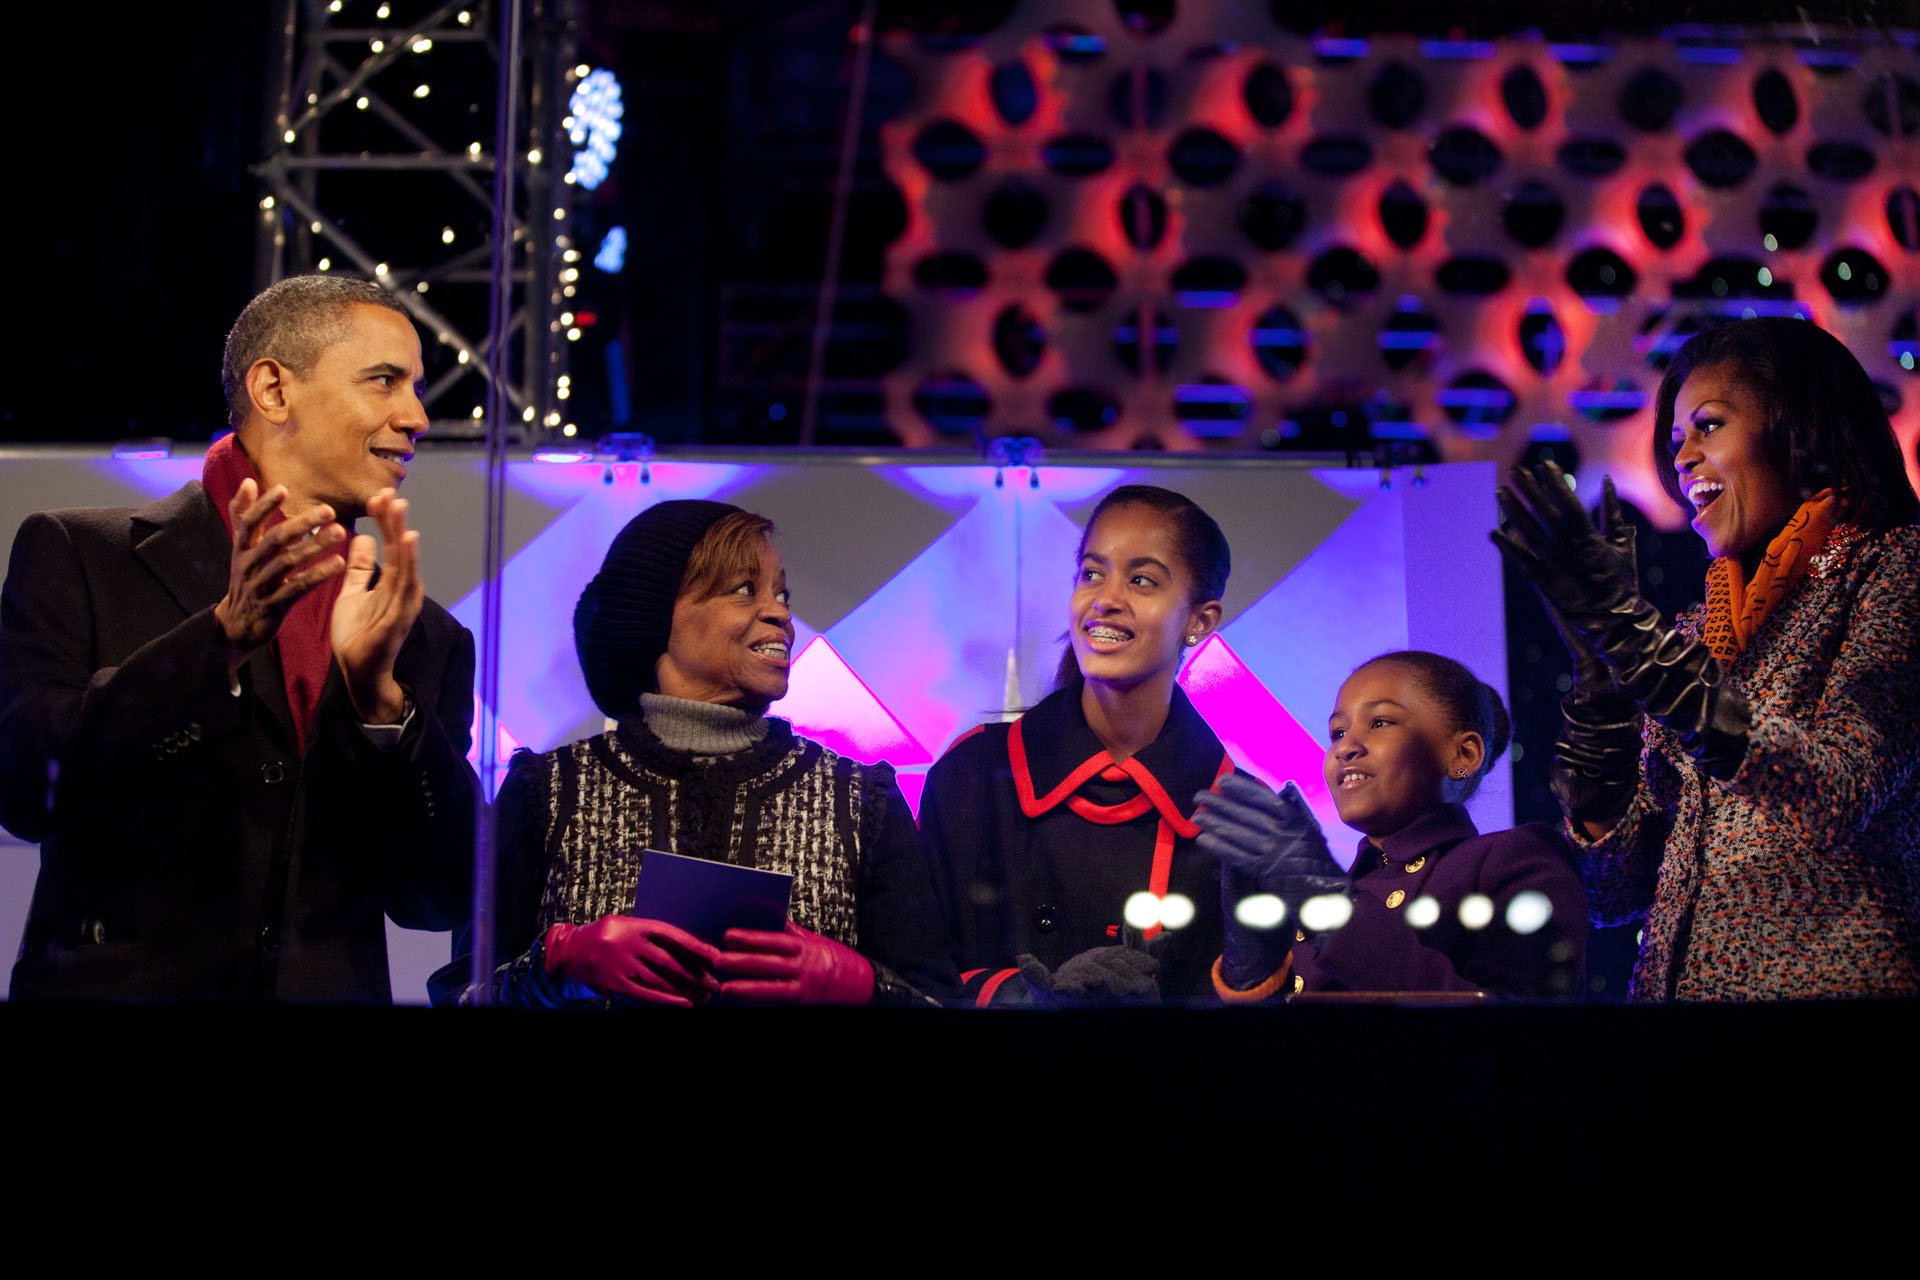 The Obama Family Lights the National Christmas Tree